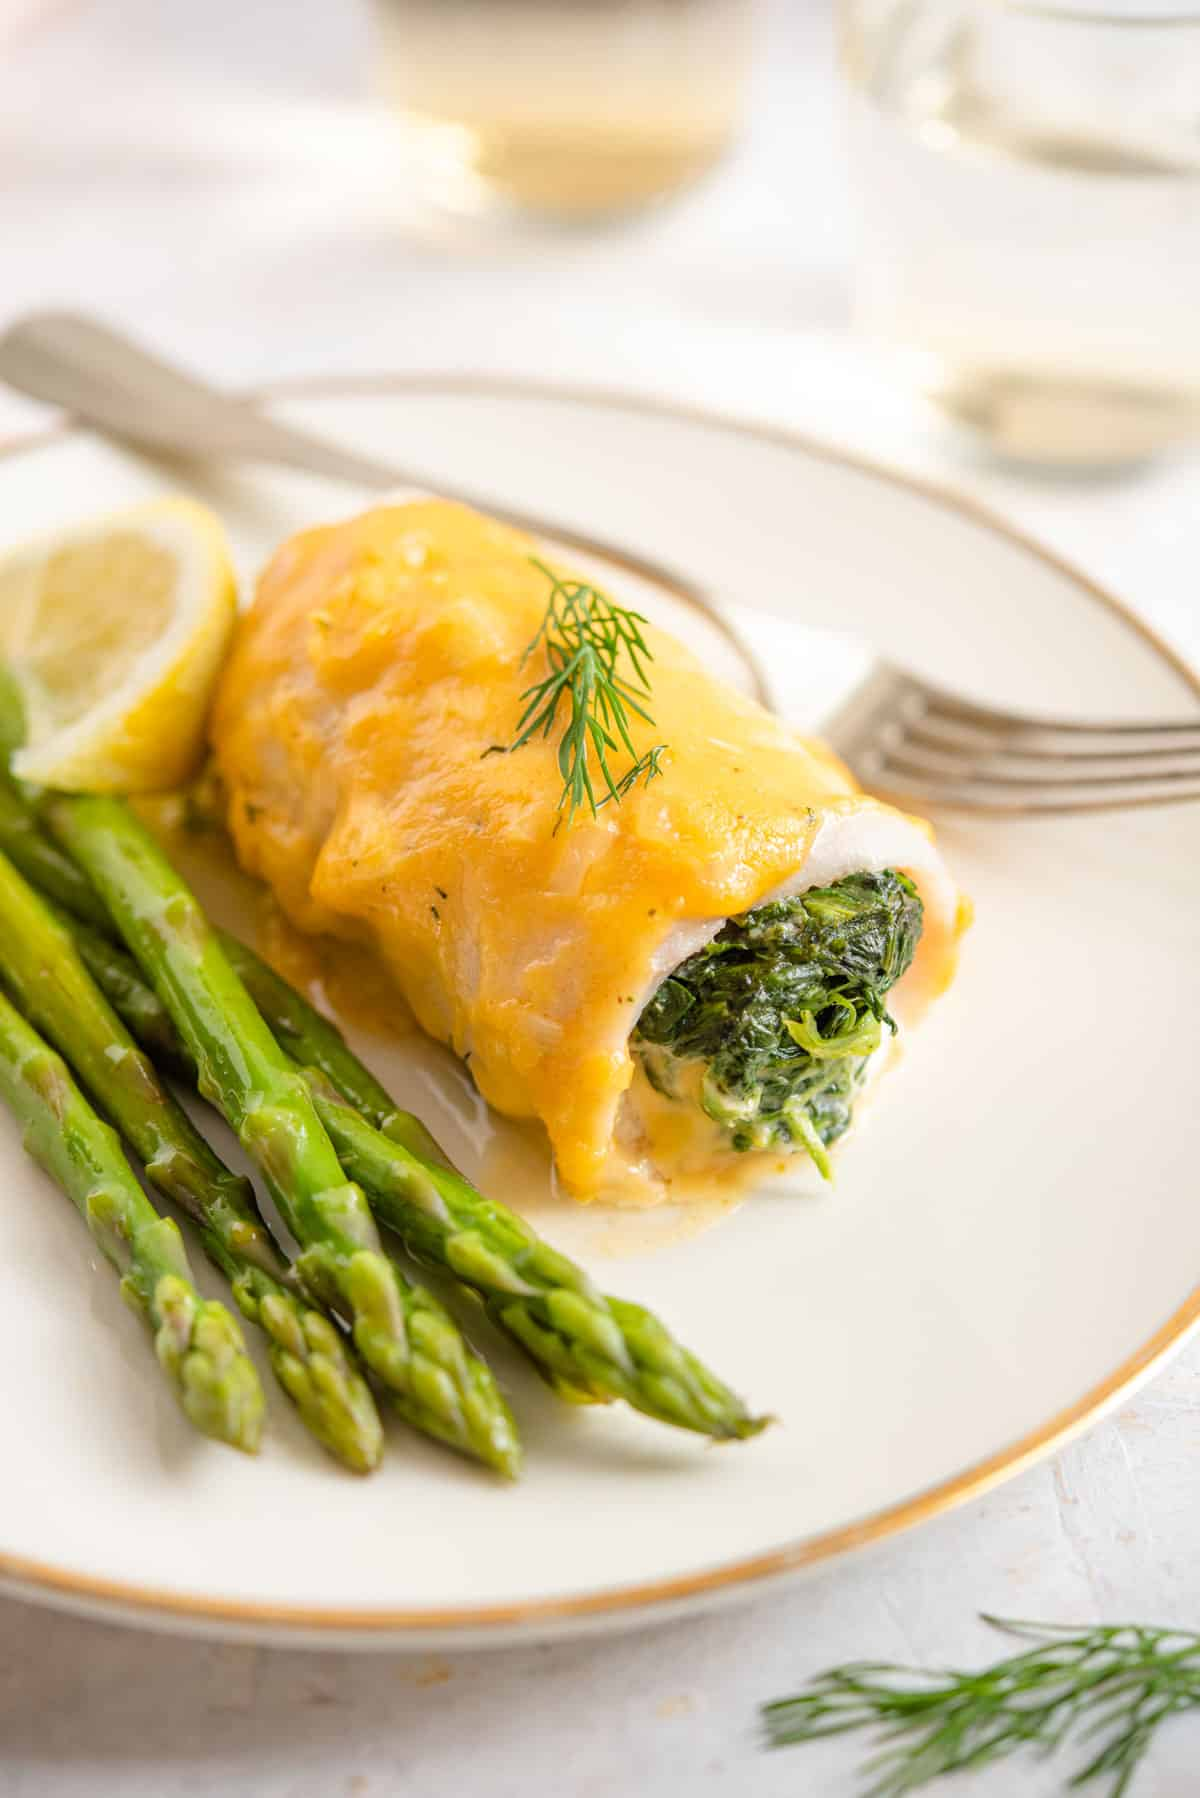 A close up of stuffed fillet of sole with a cheese sauce on a plate